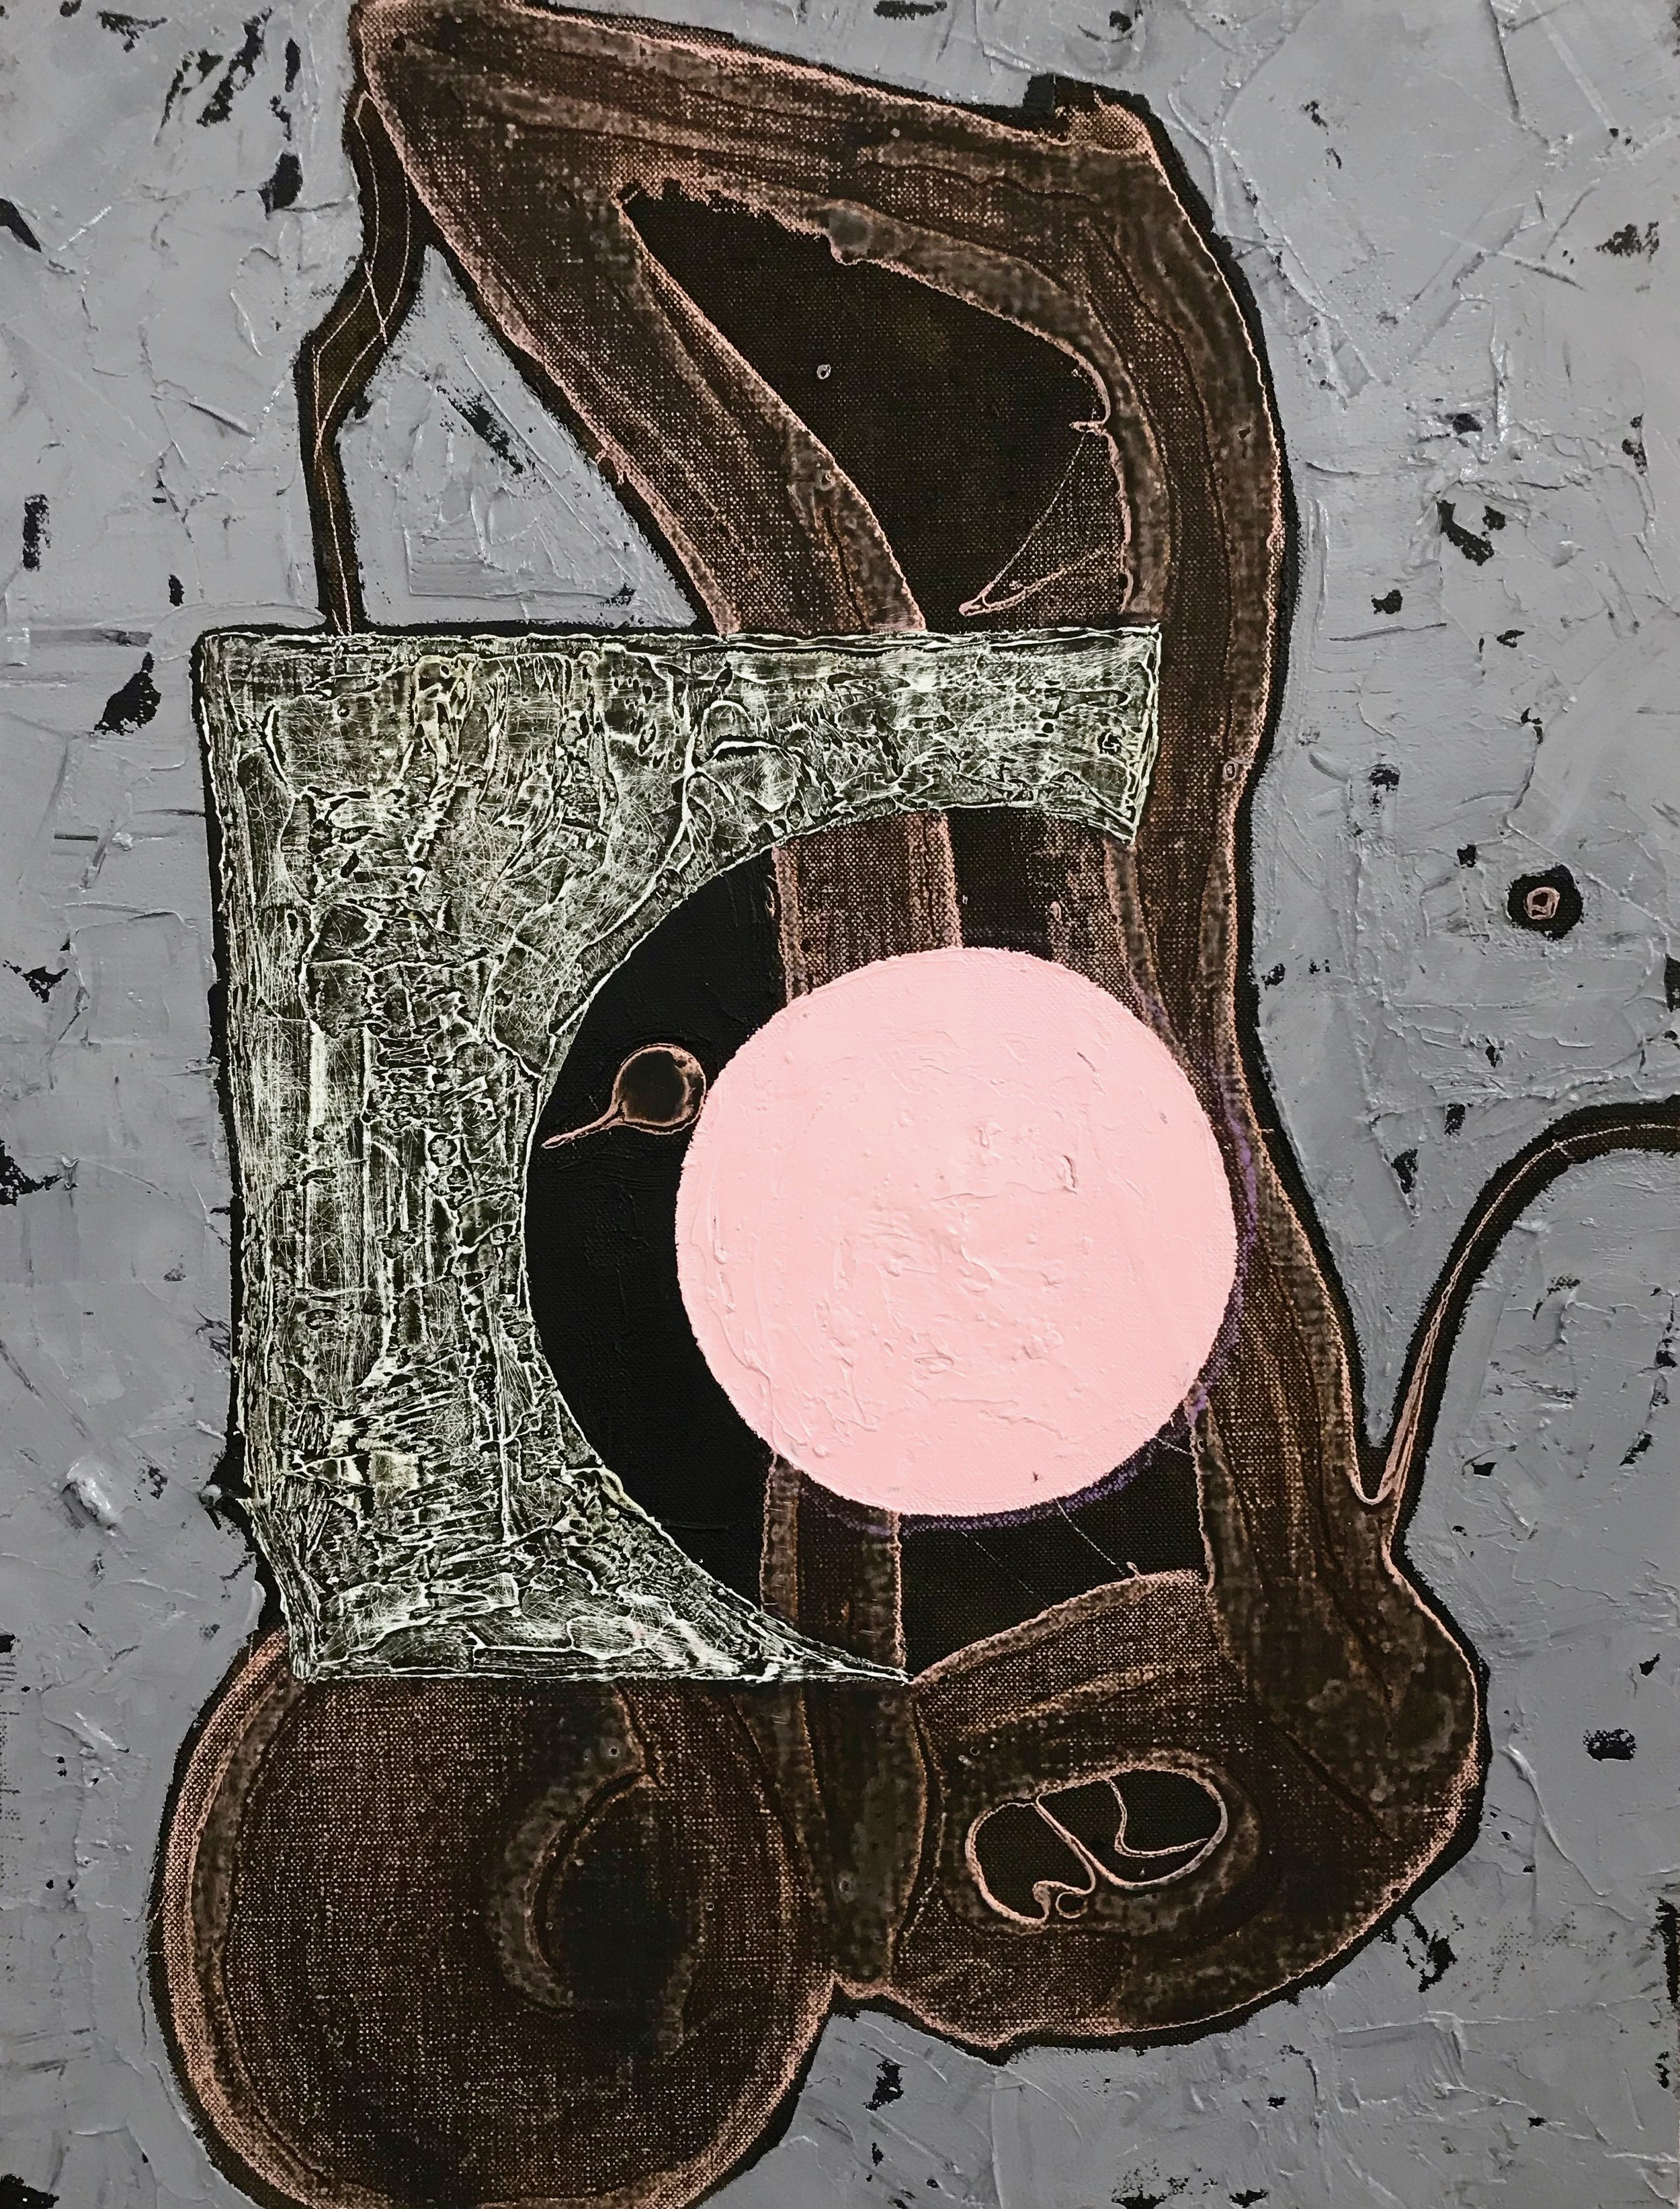 PETER SHARP  Rusted On , 2019 oil and acrylic on linen 45 x 36 cm